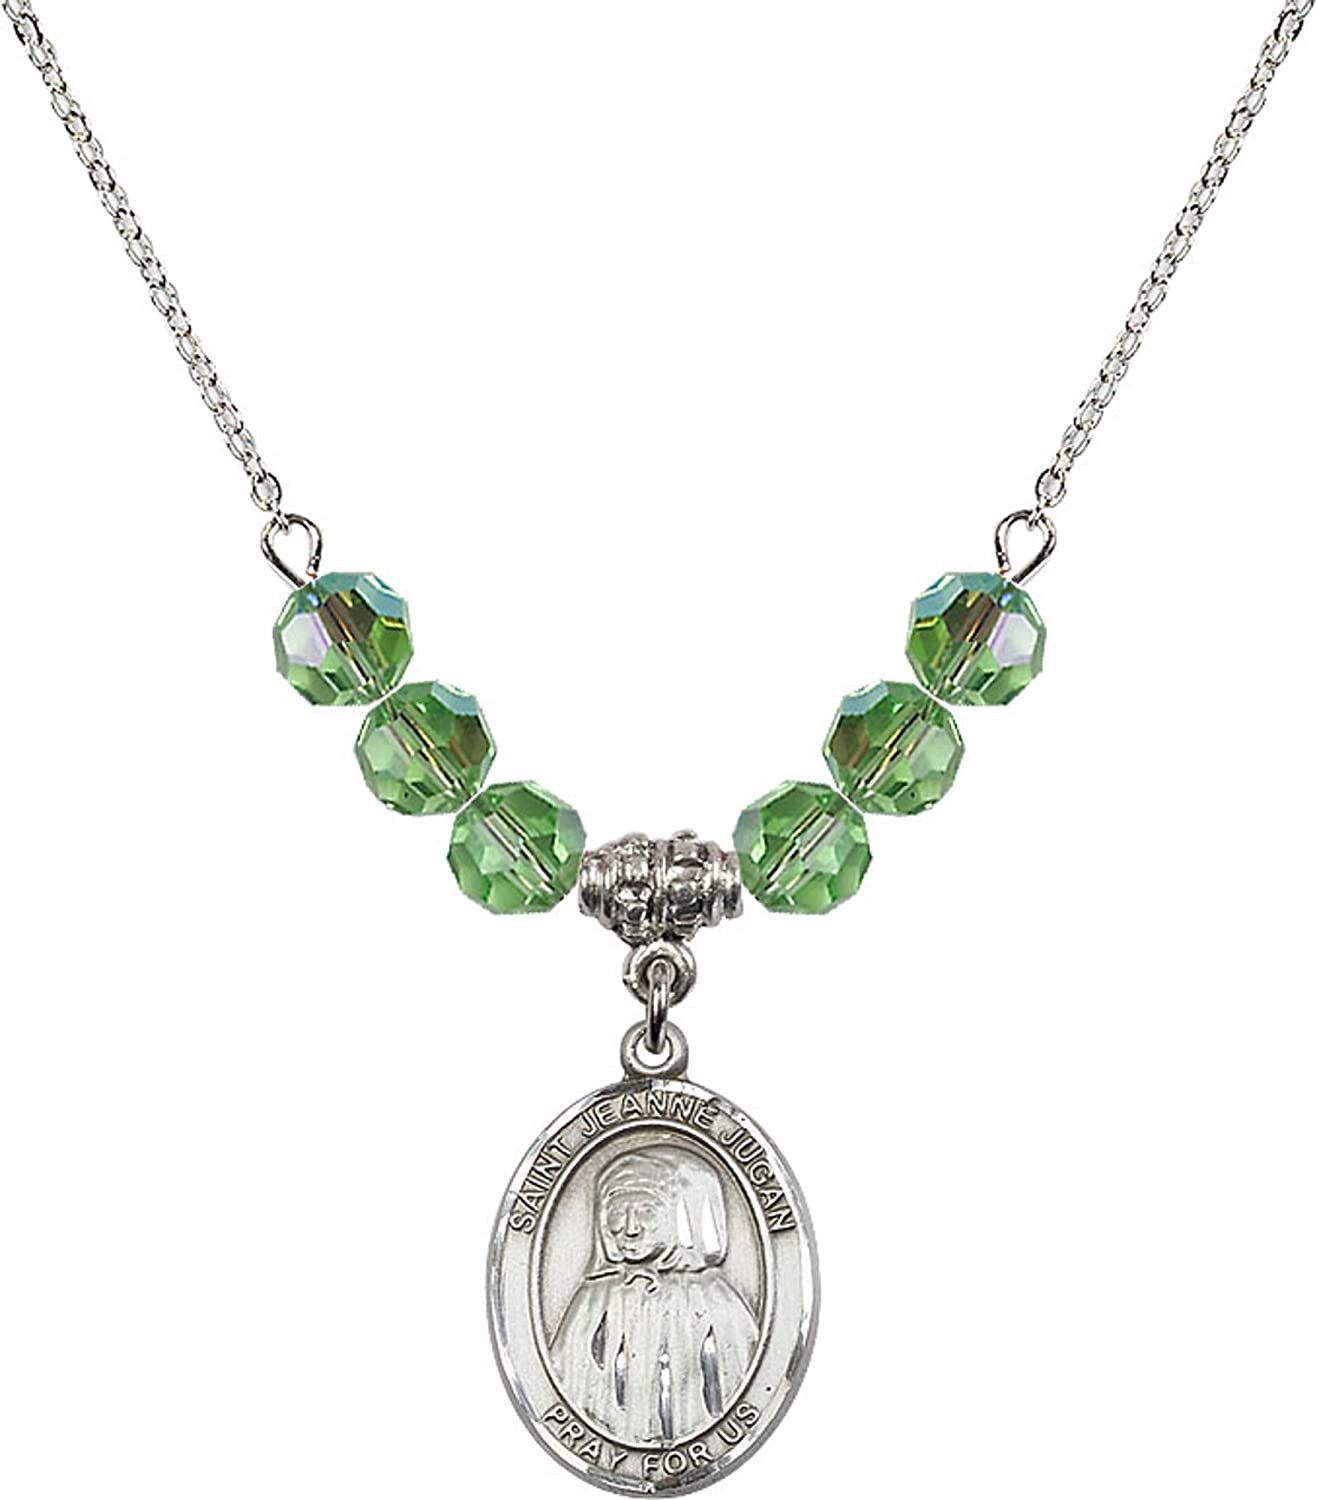 Bonyak Jewelry 18 Inch Rhodium Plated Necklace w// 6mm Green August Birth Month Stone Beads and Saint Jeanne Jugan Charm